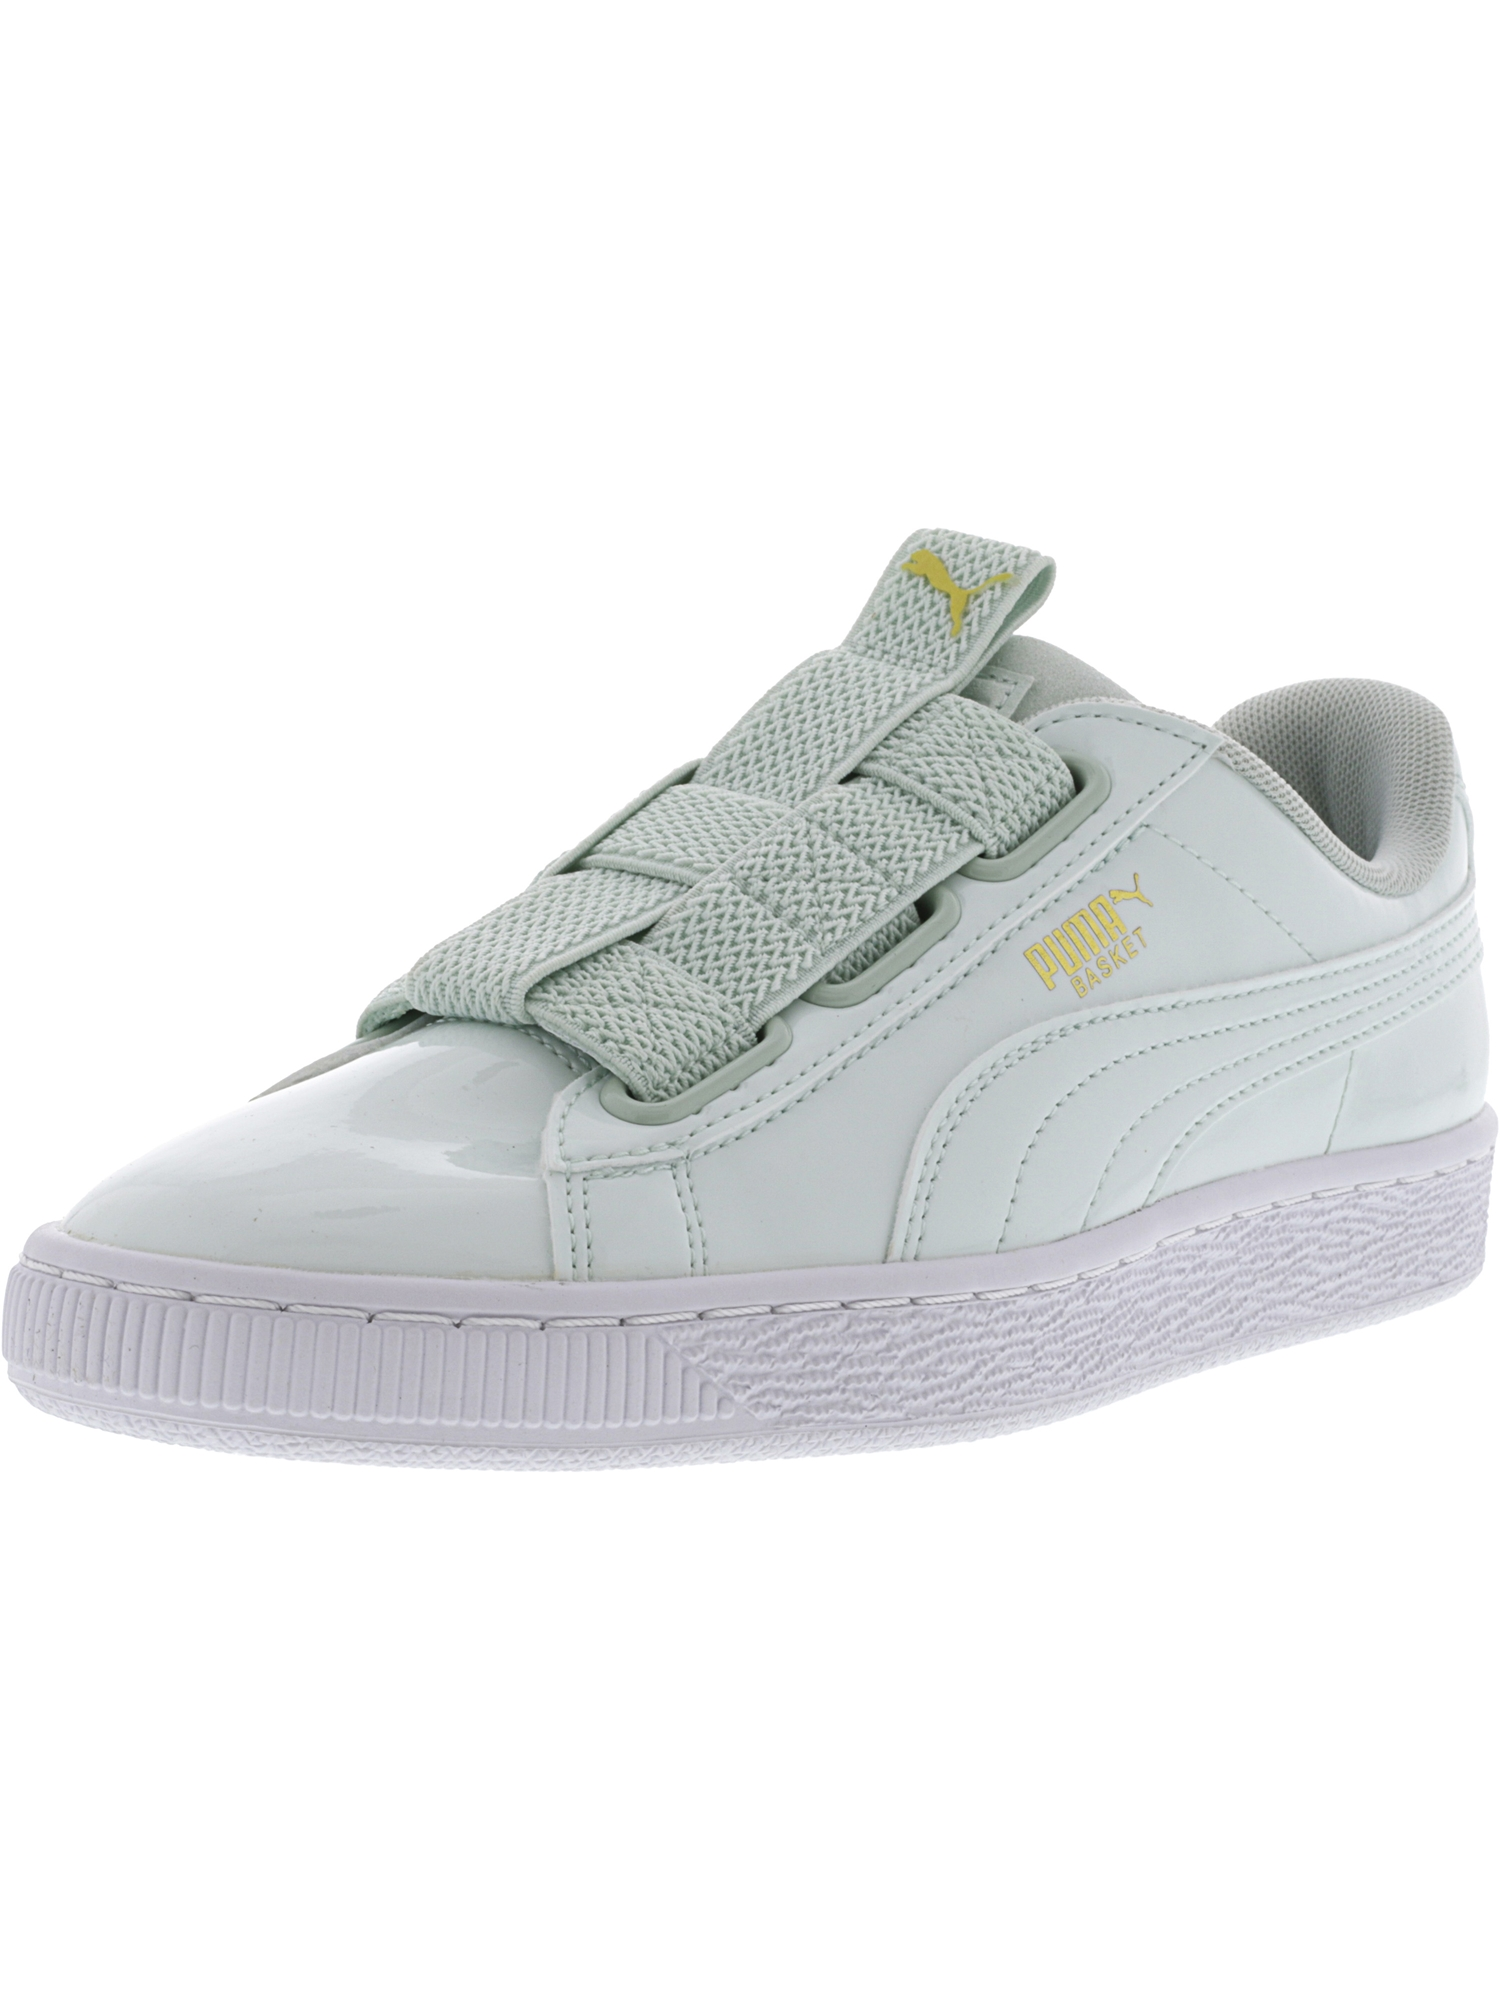 Puma Women's Basket Maze Pearl / White Ankle-High Fashion Sneaker - 9M